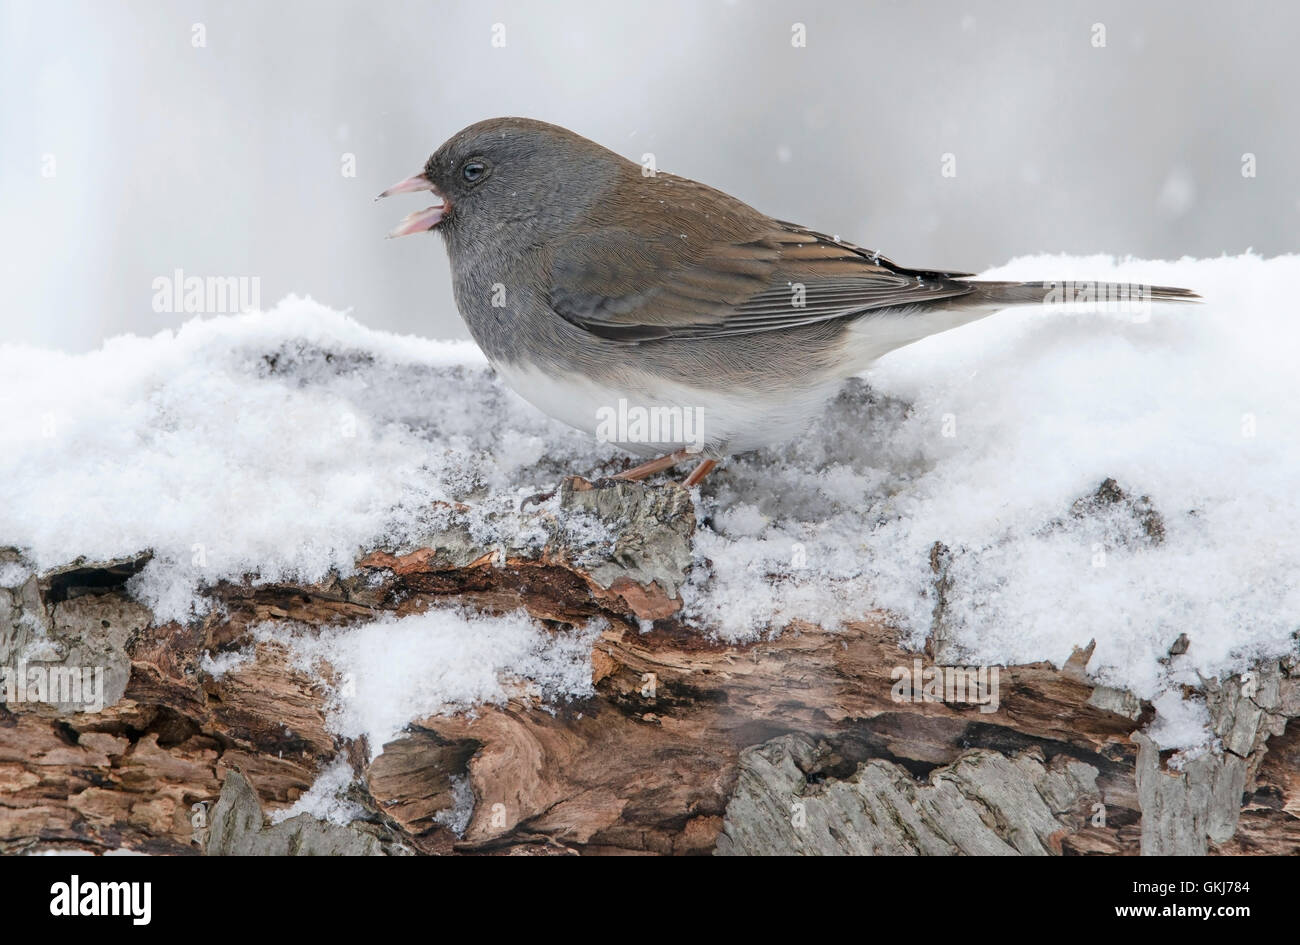 Slate-Colored or Dark-eyed Junco hyemalis, snowing, winter, female, Eastern USA - Stock Image